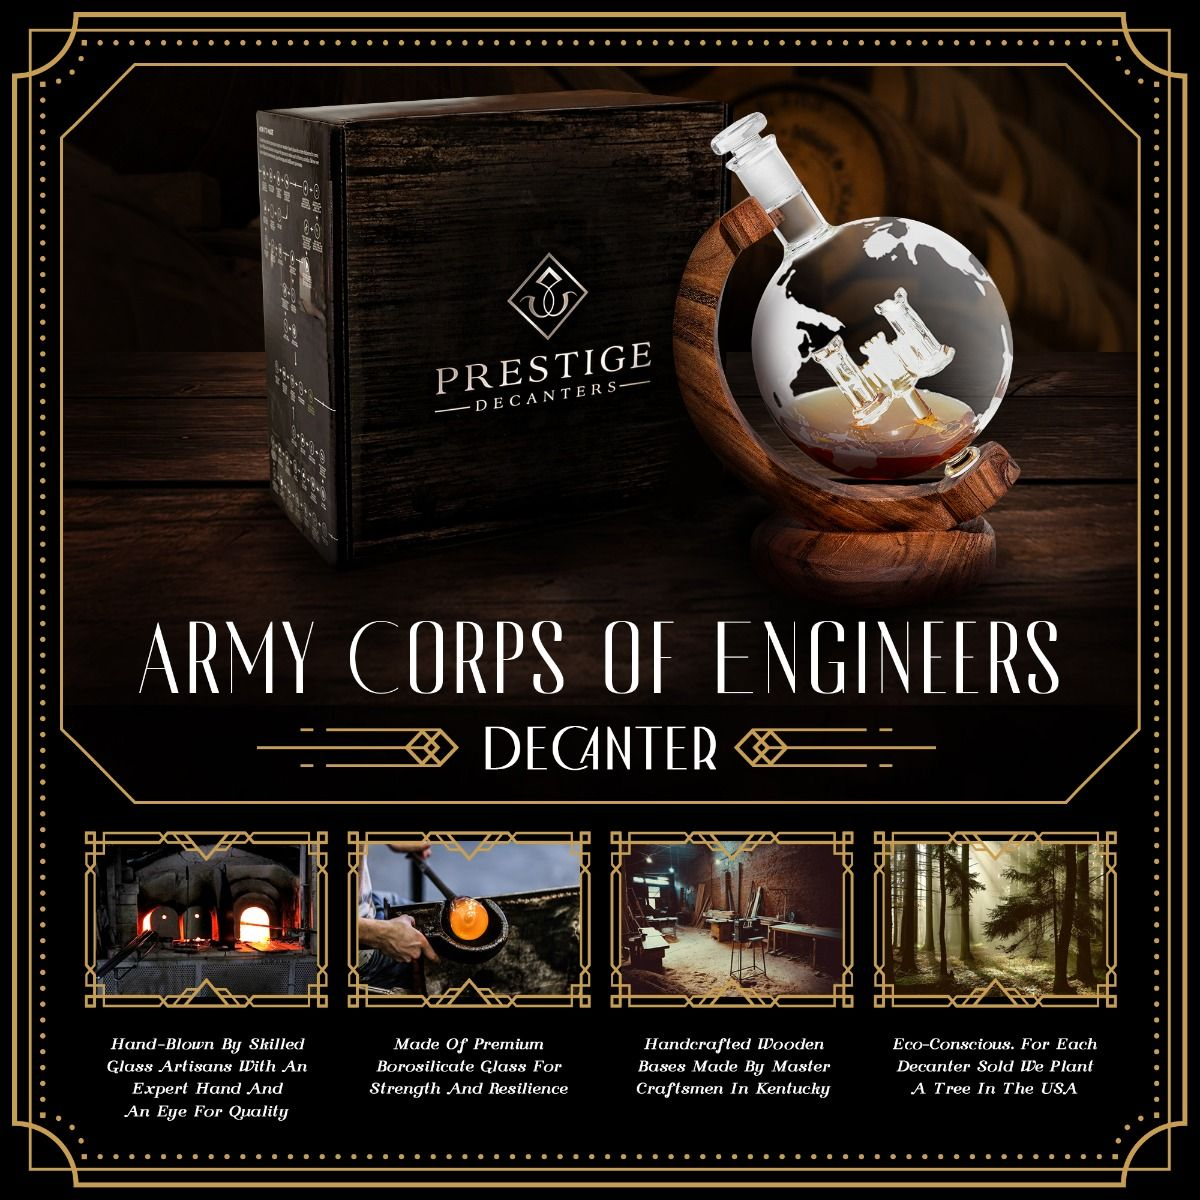 Features of Army Corps of Engineers Decanter